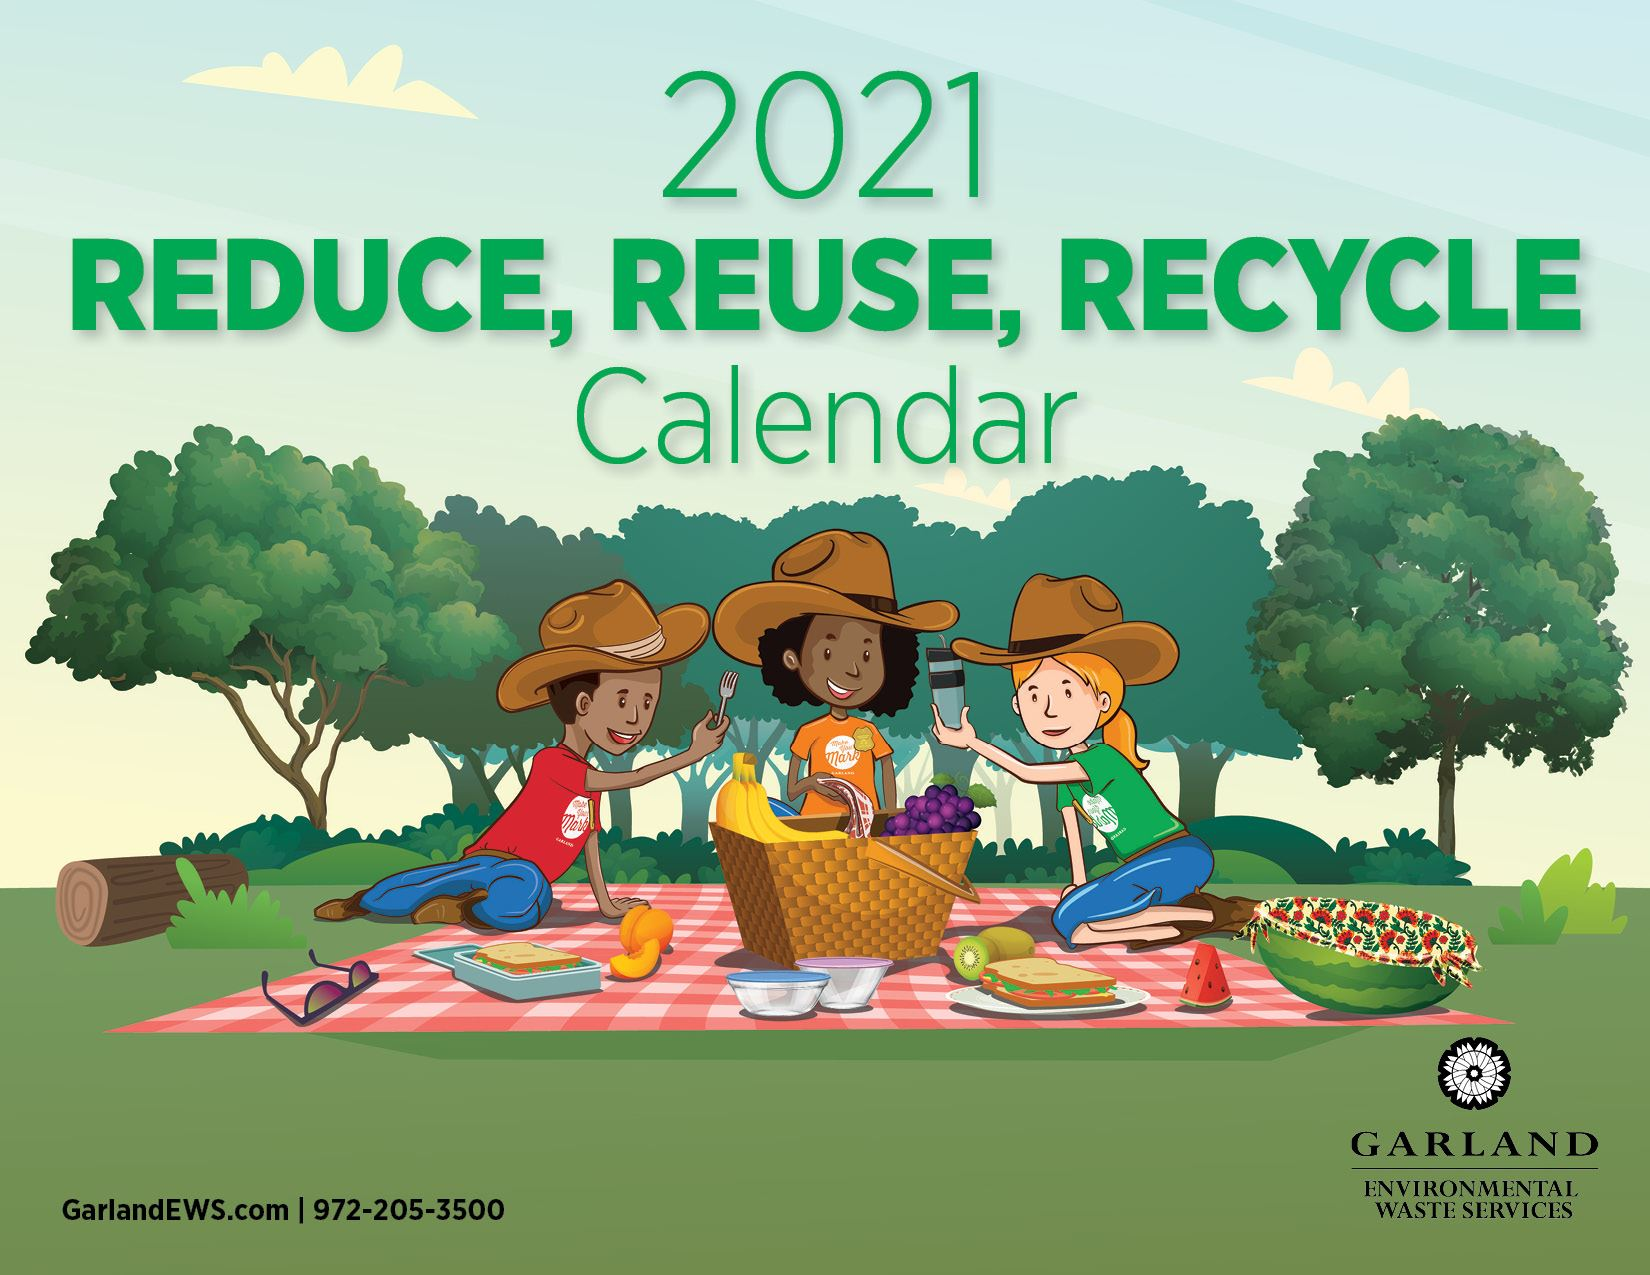 Front page of 2021 Reduce, Reuse, Recycle Calendar